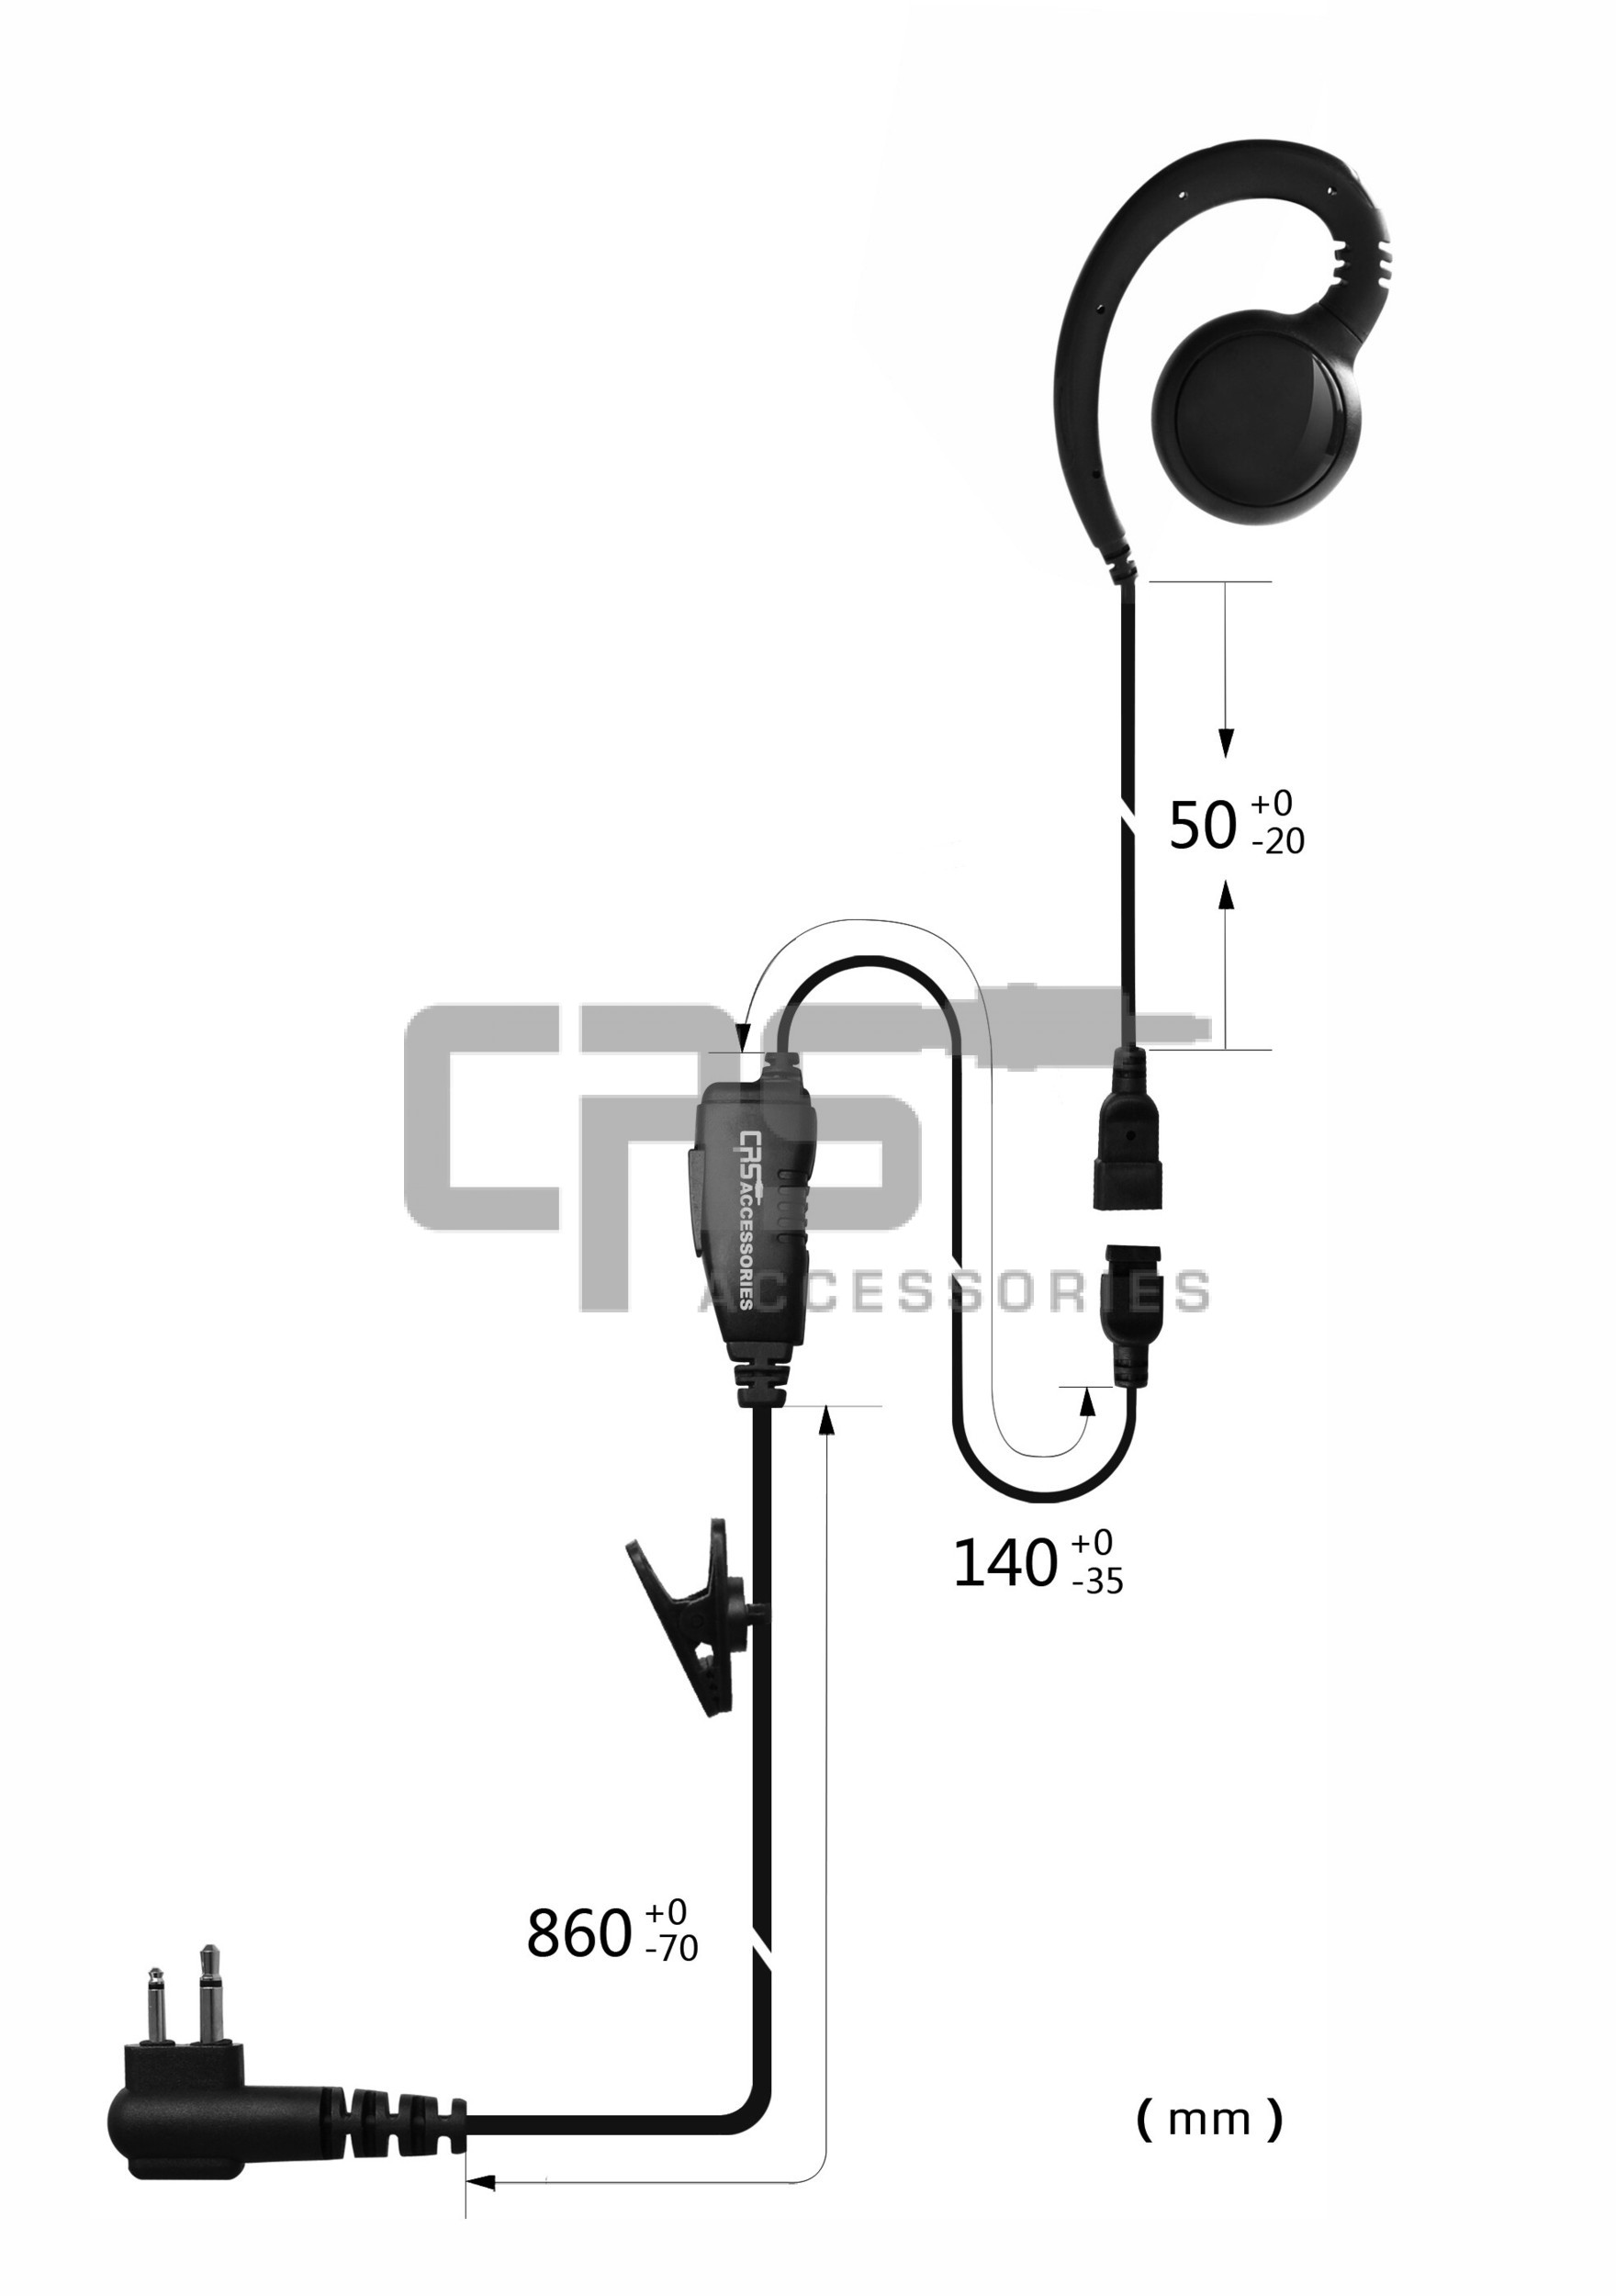 CRS 1 Wire GHOOK earpiece with Inline PTT/MIC to suit Icom 2 pin R/A locking IC-41W/IC-41Pro